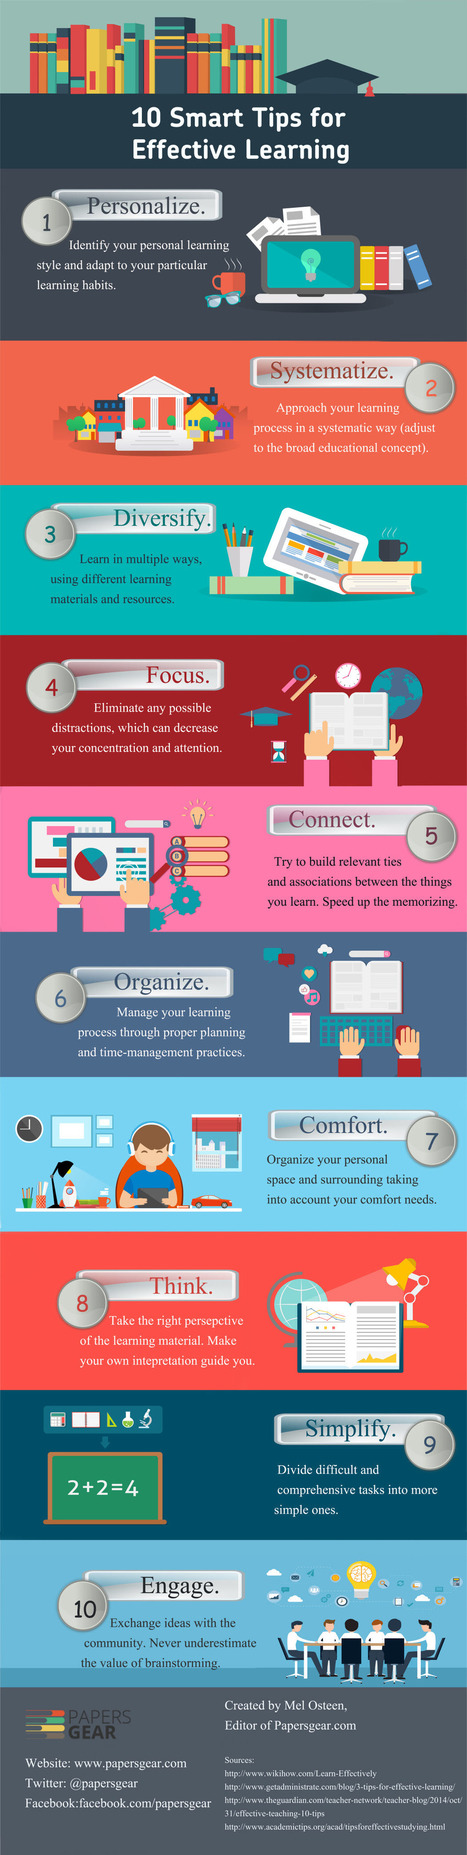 10 Smart Tips for Effective Learning Infographic - e-Learning Infographics | ANALYZING EDUCATIONAL TECHNOLOGY | Scoop.it